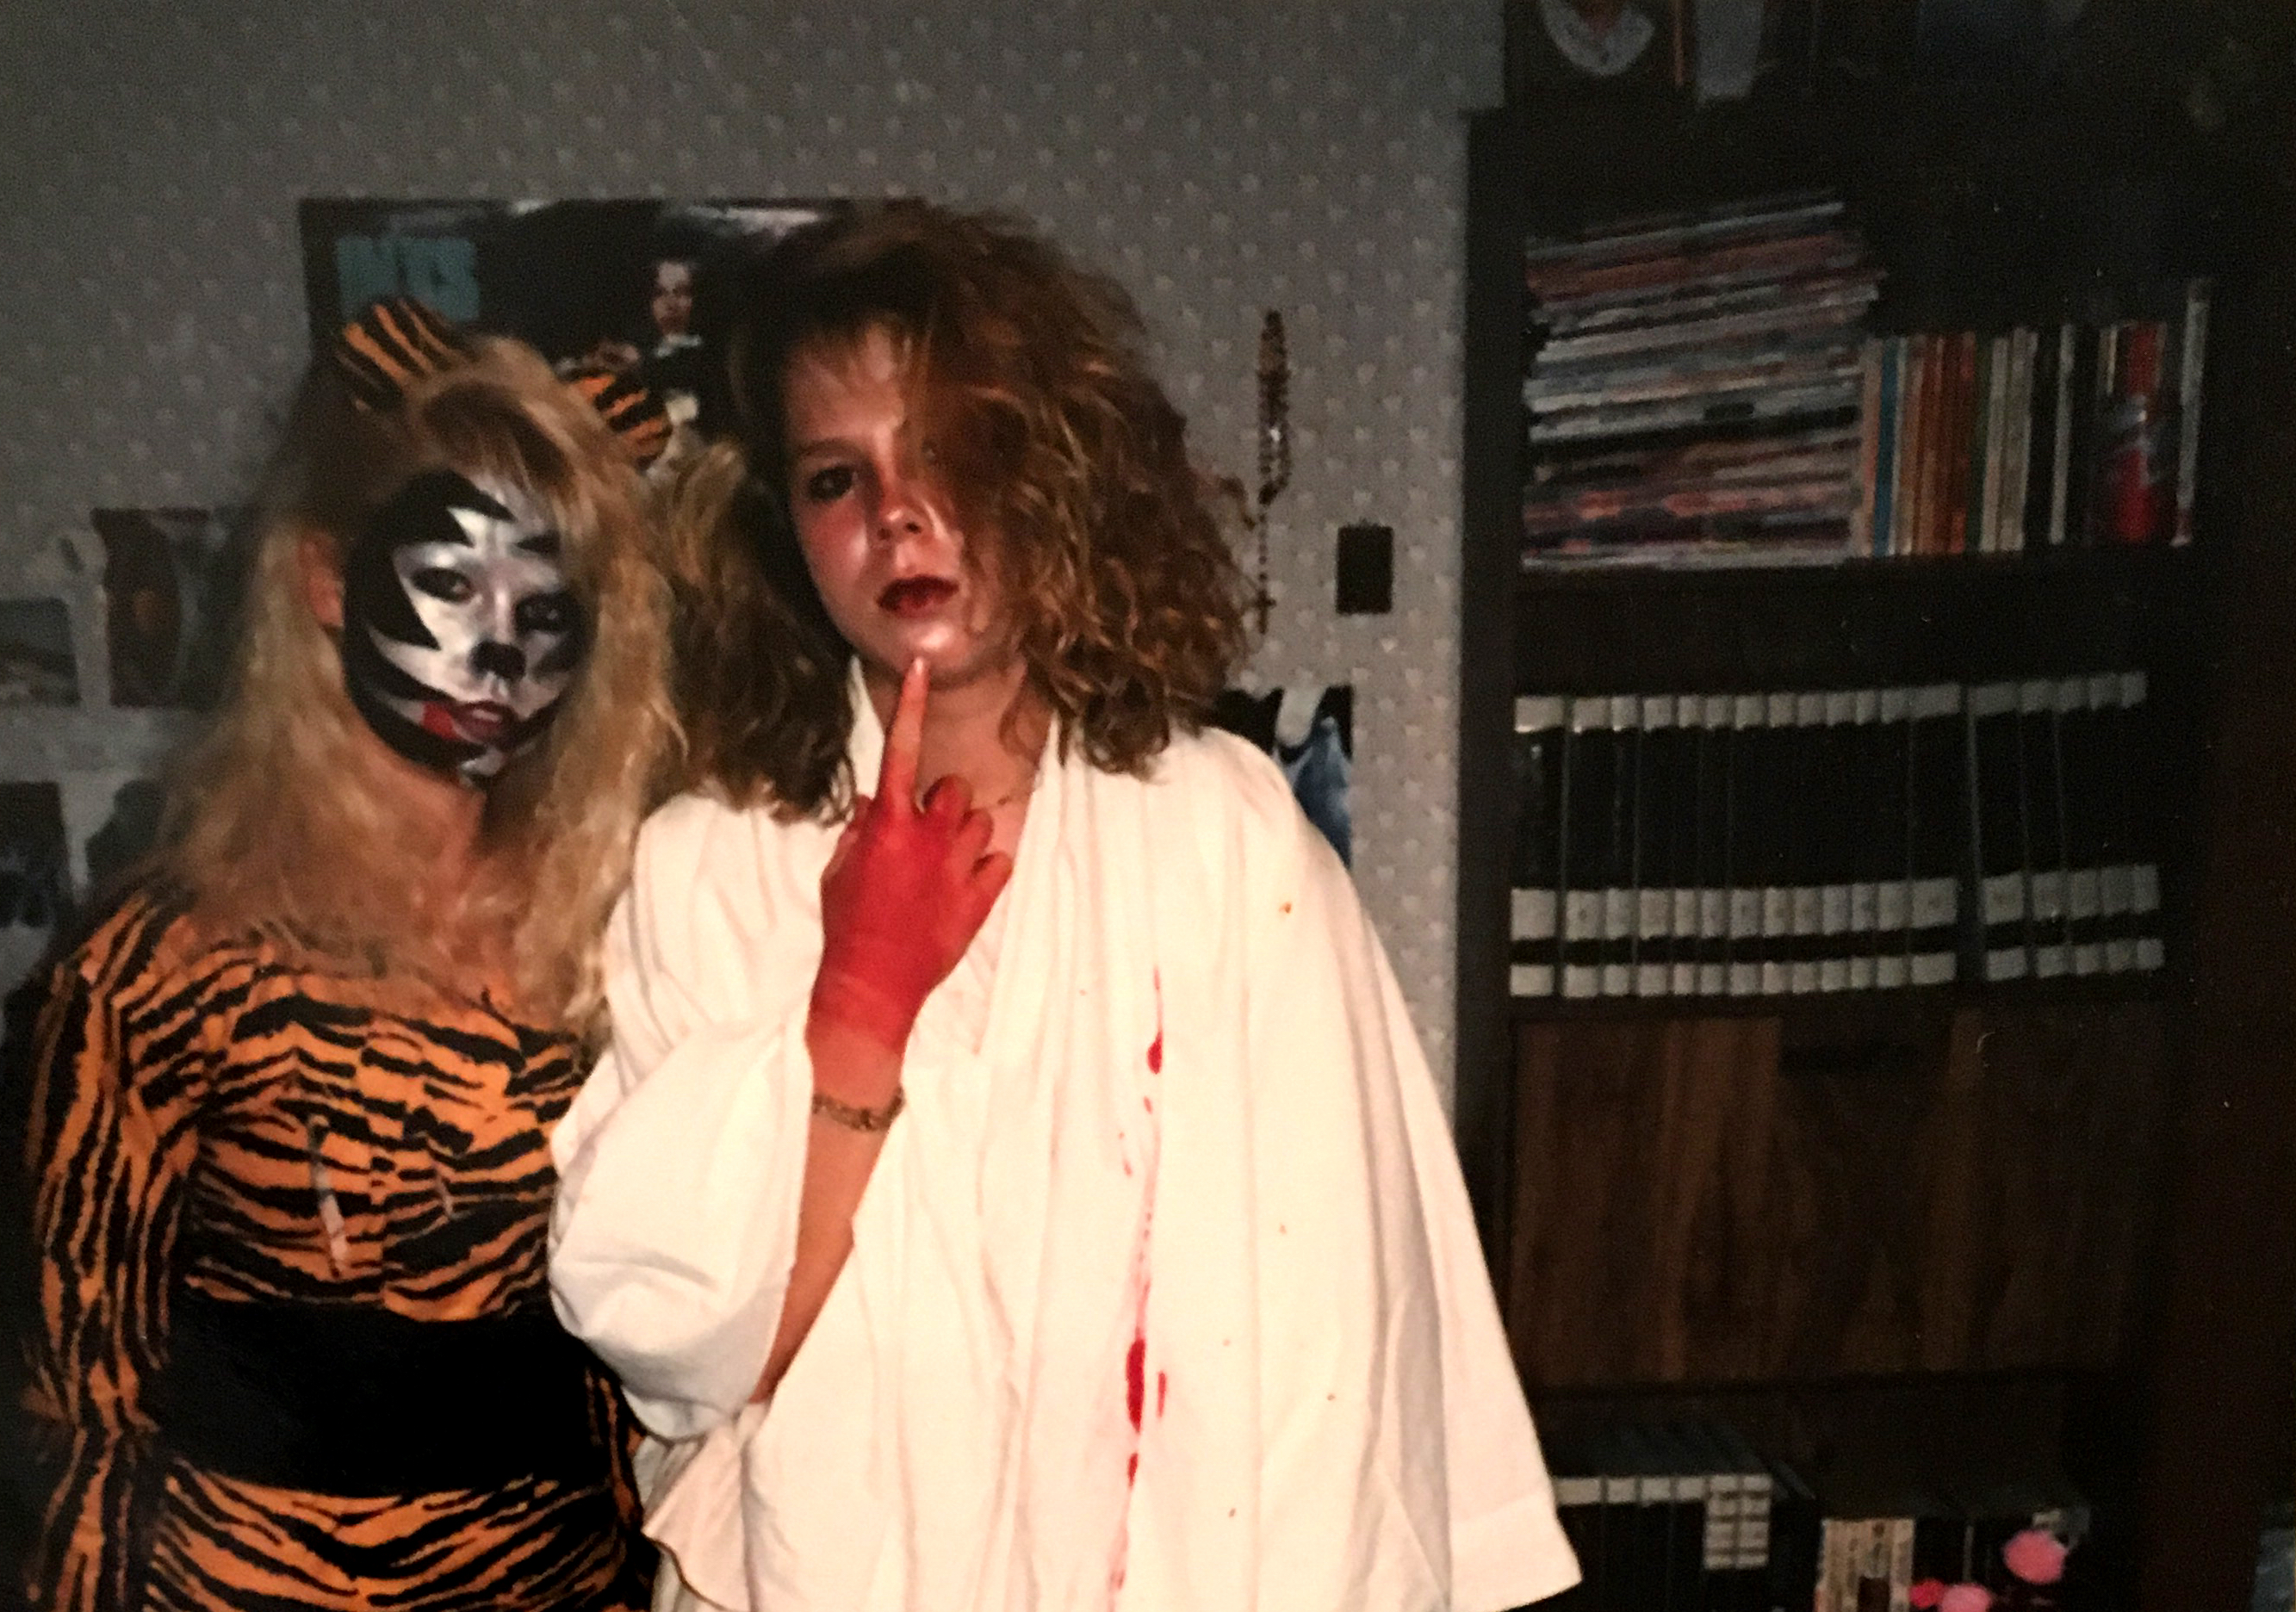 Mattie and cousin Elena in Halloween costumes during high school.